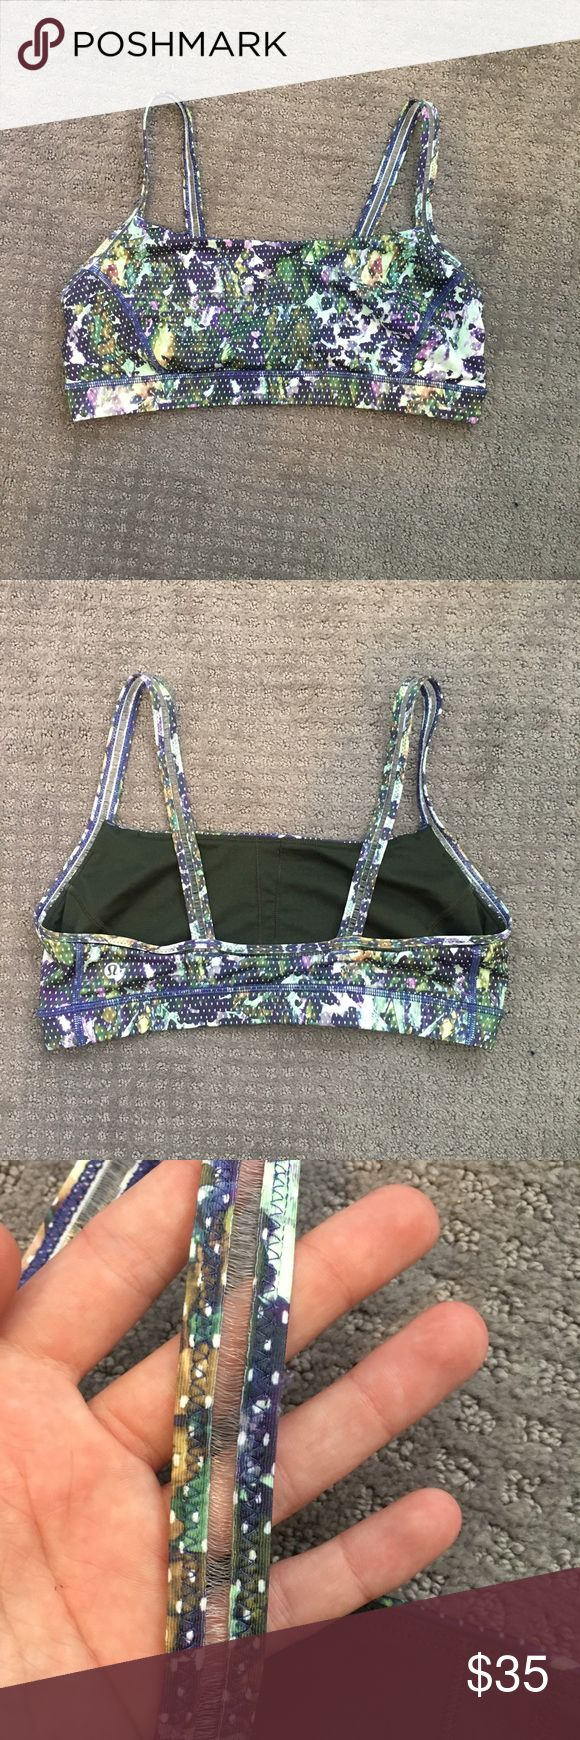 Lululemon floral sports bra Super cute patterned sports bra from lululemon. Size 12. In great condition, really great for working out! Very supportive. No padding lululemon athletica Intimates & Sleepwear Bras